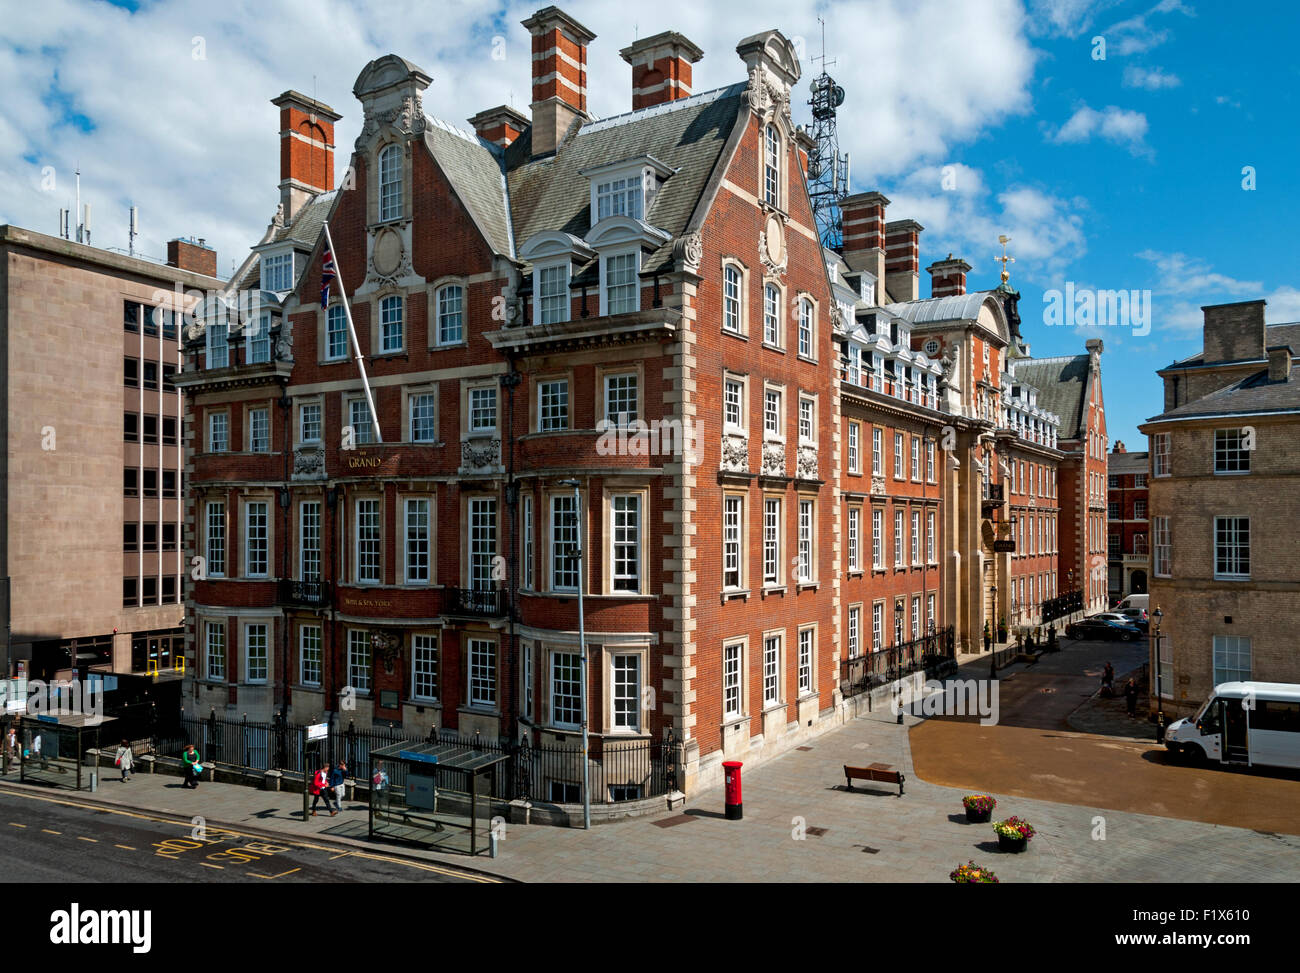 The Grand Hotel & Spa building, former HQ of the North Eastern Railway, Station Road, City of York, Yorkshire, - Stock Image